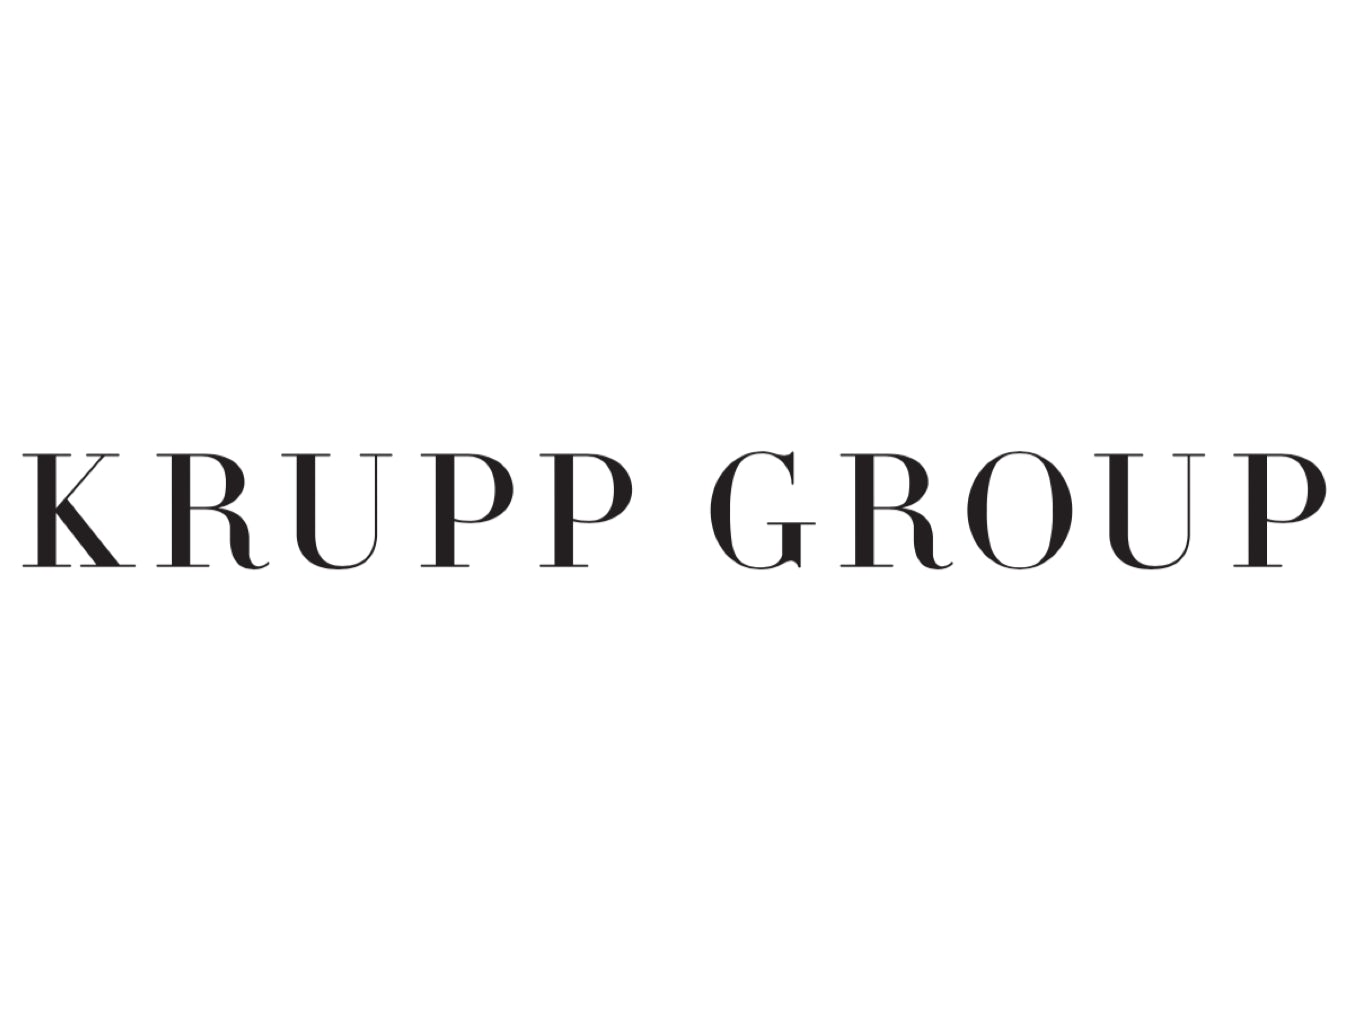 Krupp Group company logo